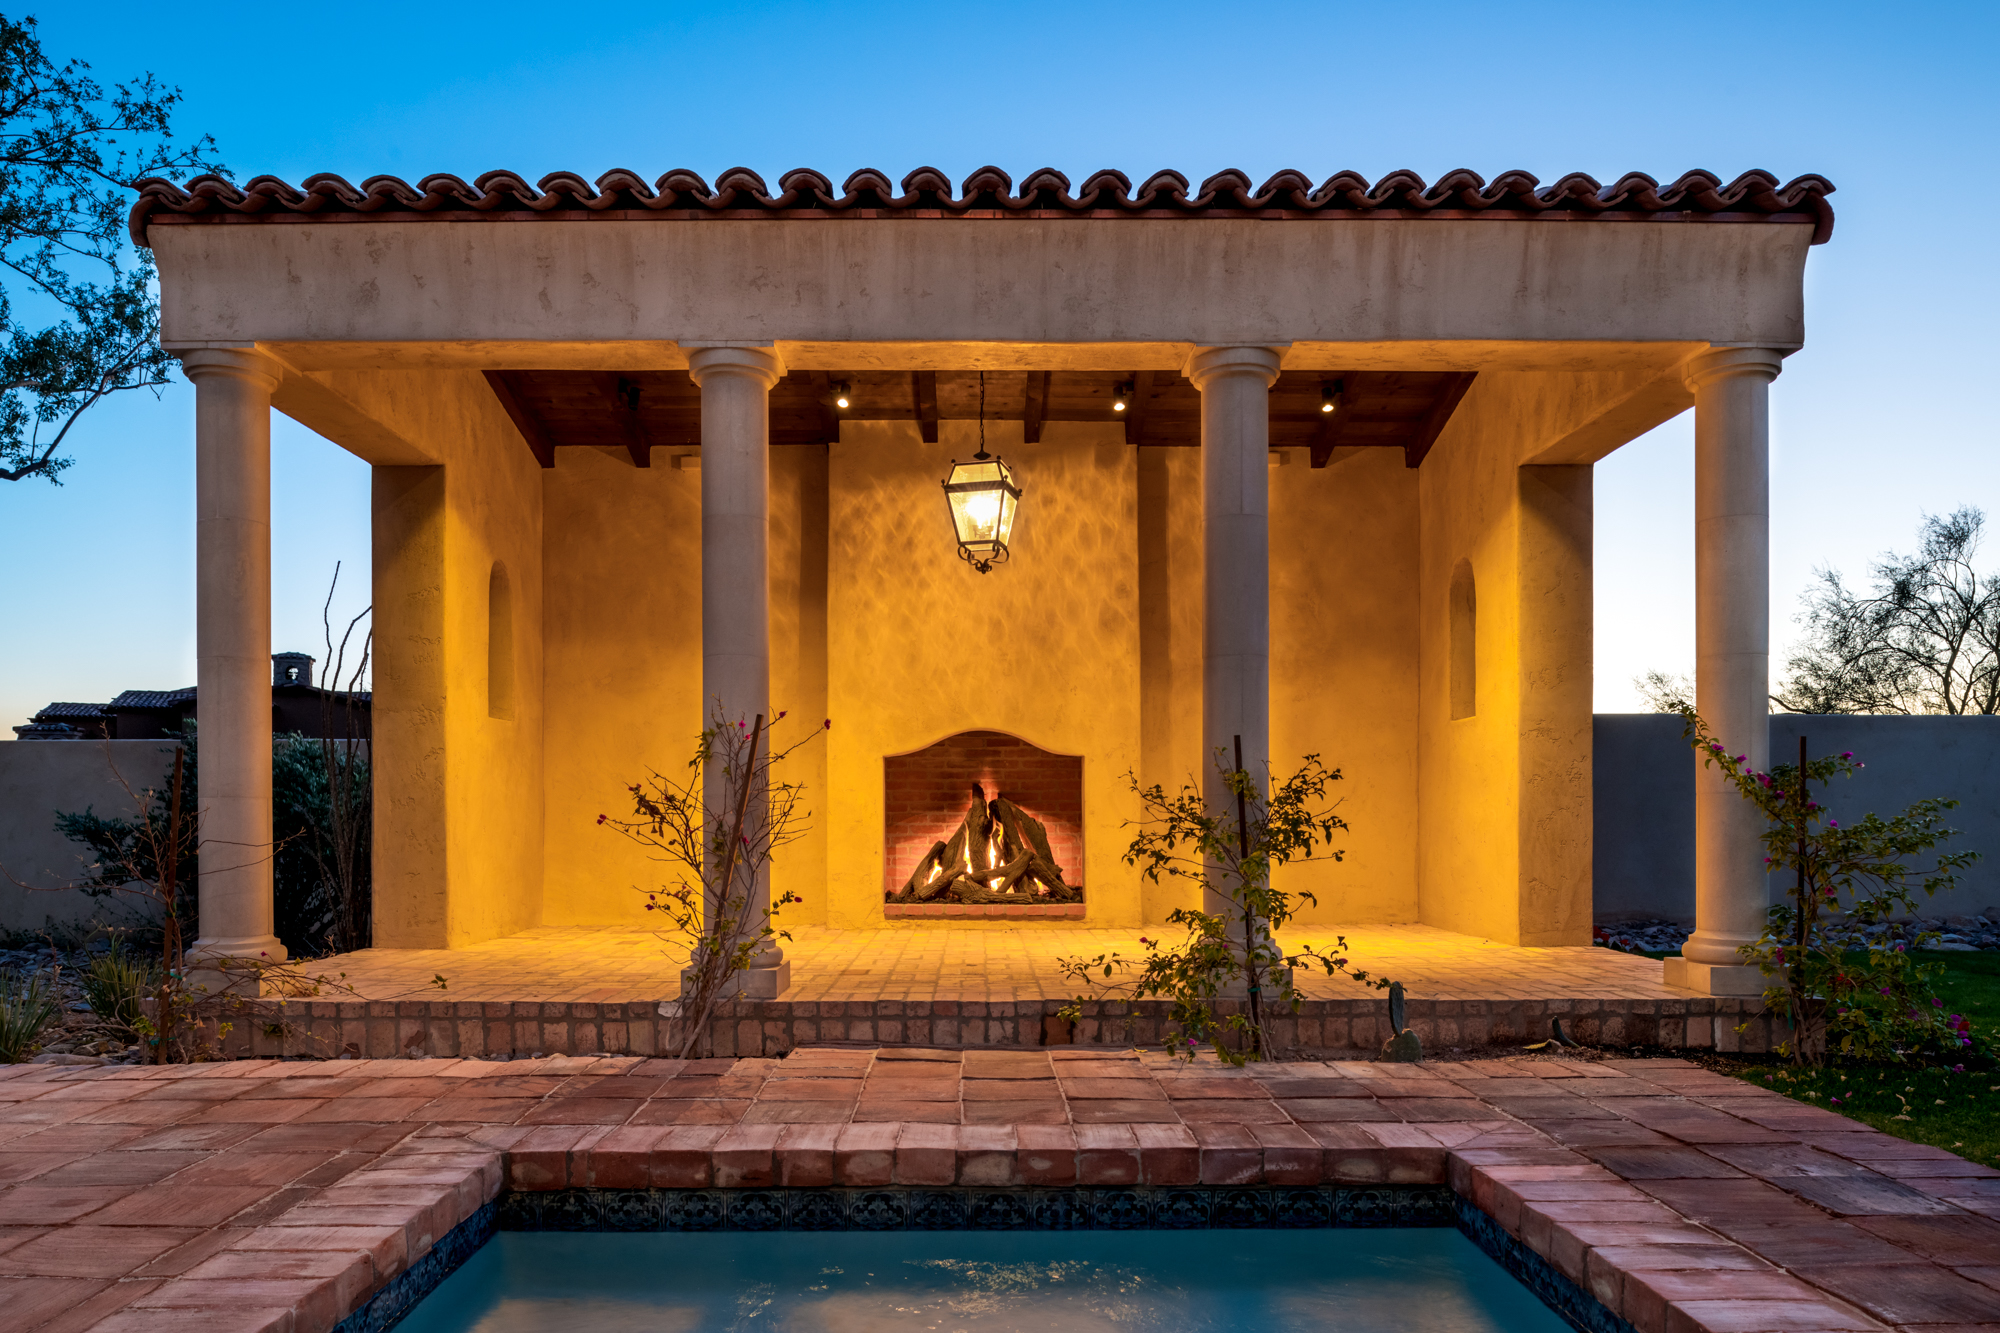 Silverleaf Home_Architecture_An Pham Photography_A854180.jpg